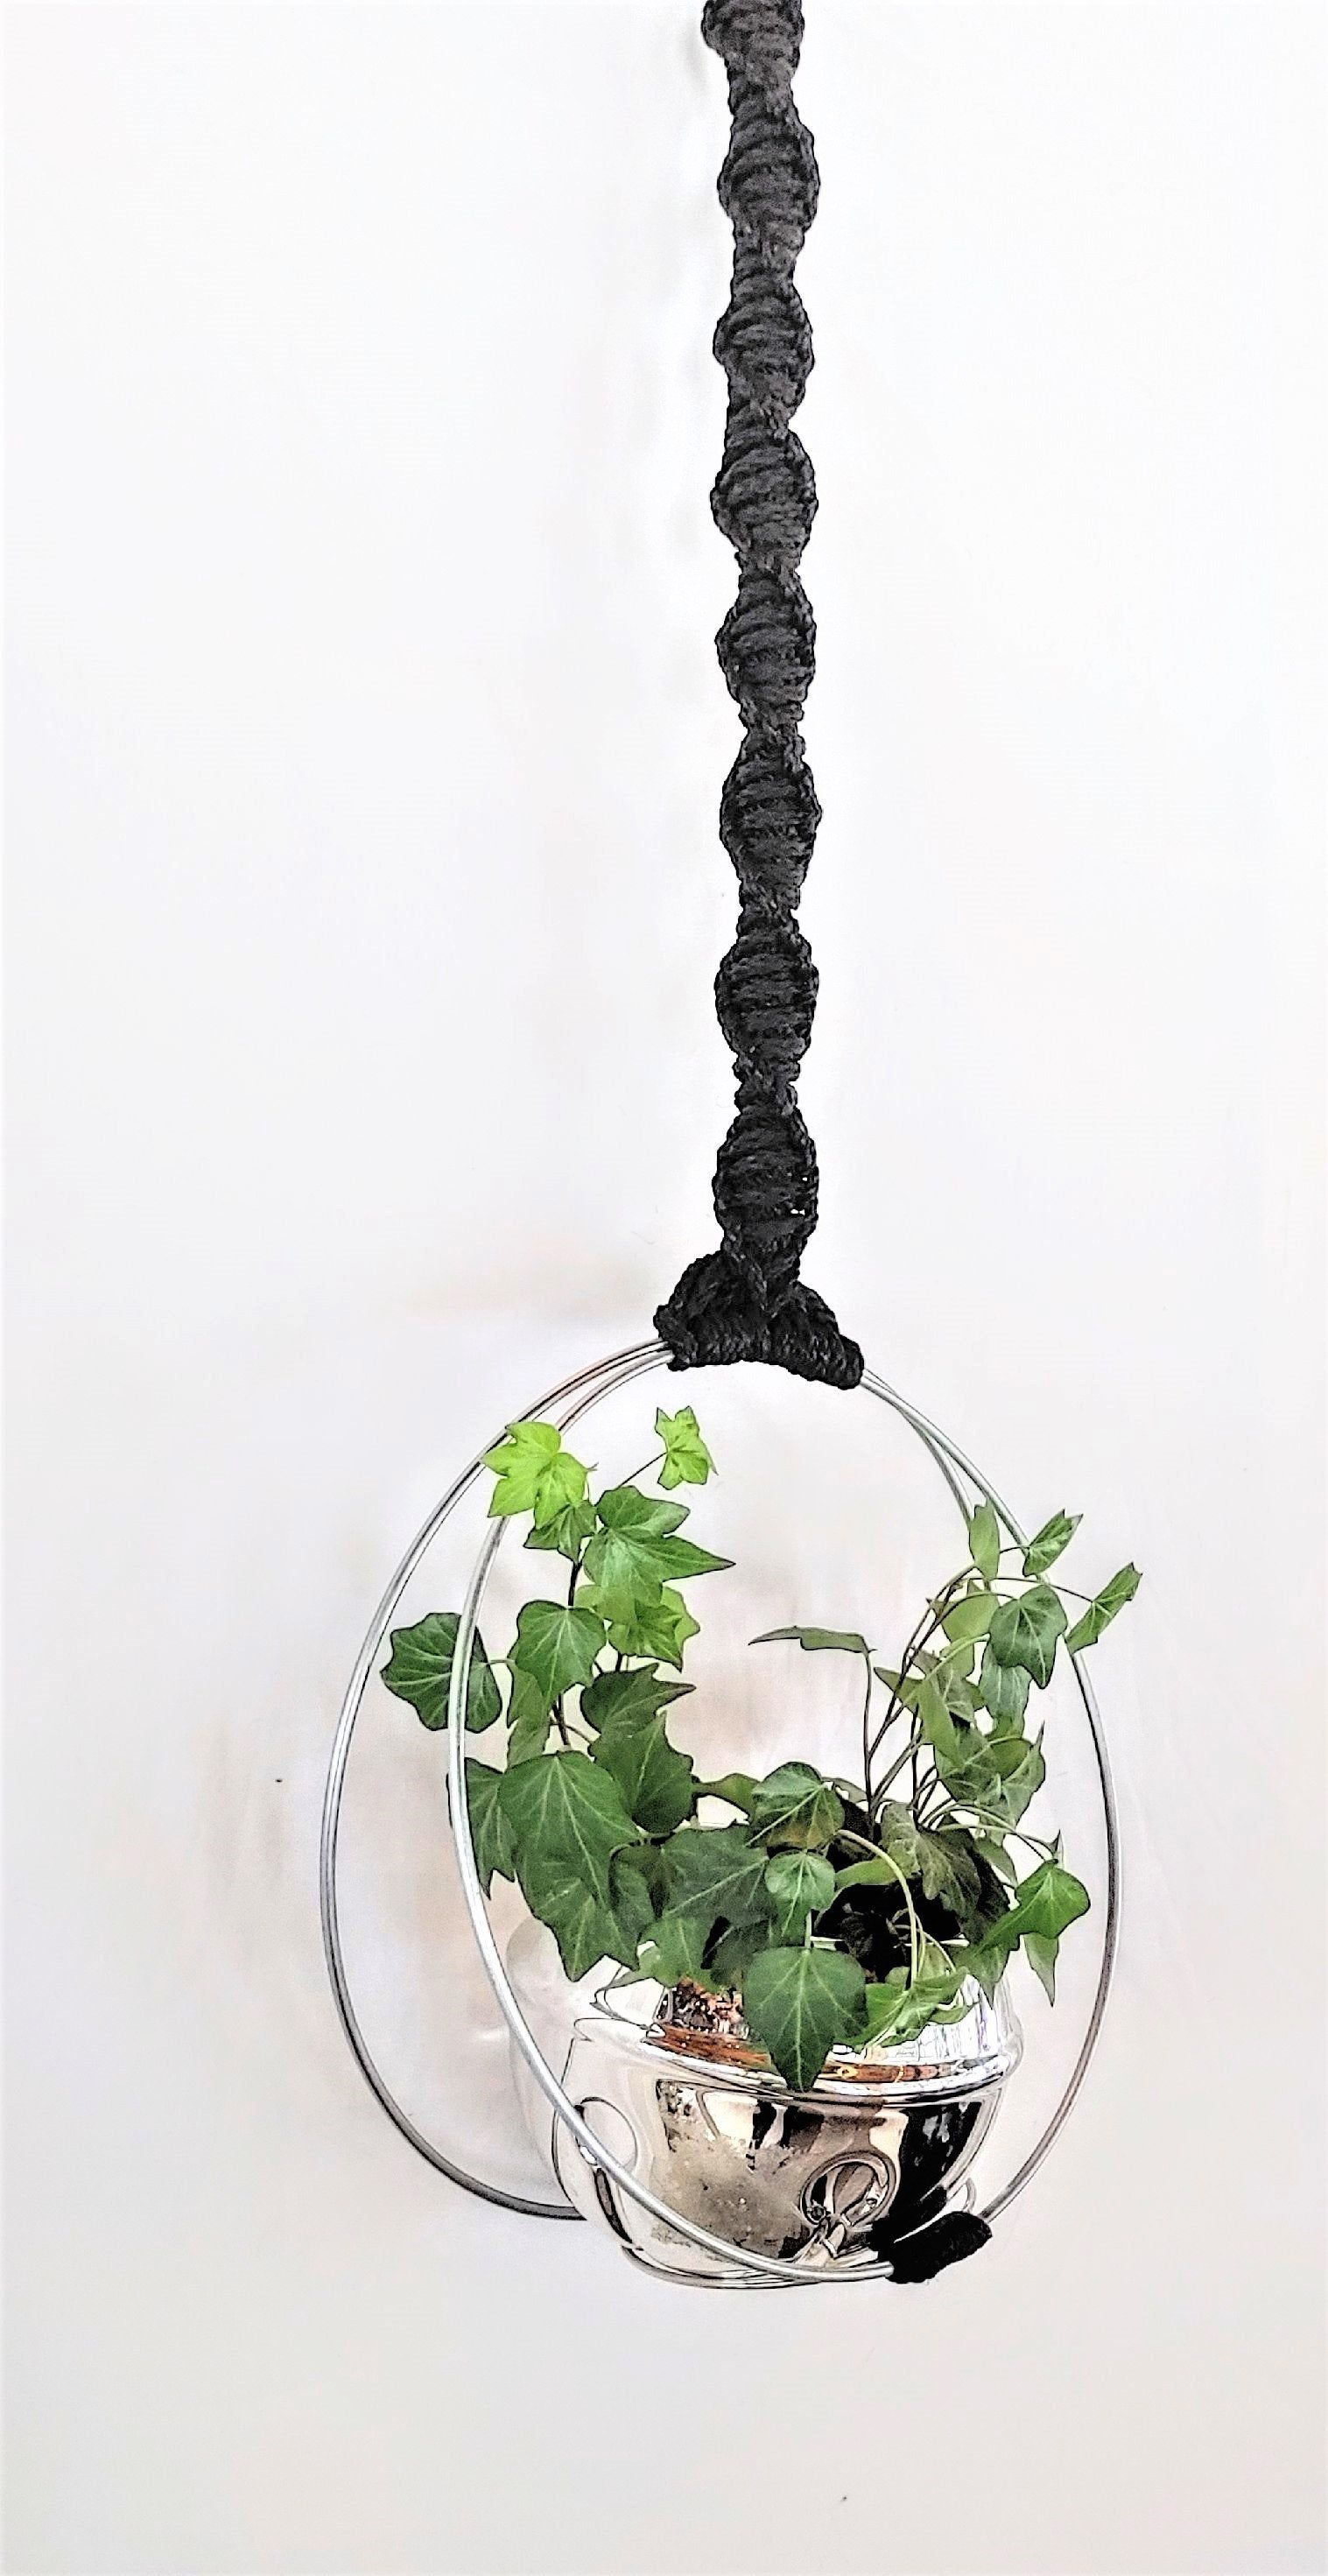 Minimalist Modern Macrame Unique Double Hoop Spiral Plant Hanger Gold Or Silver Hoops Other Colors Available In 2020 Flower Pot Hanger Plant Hanger Modern Macrame